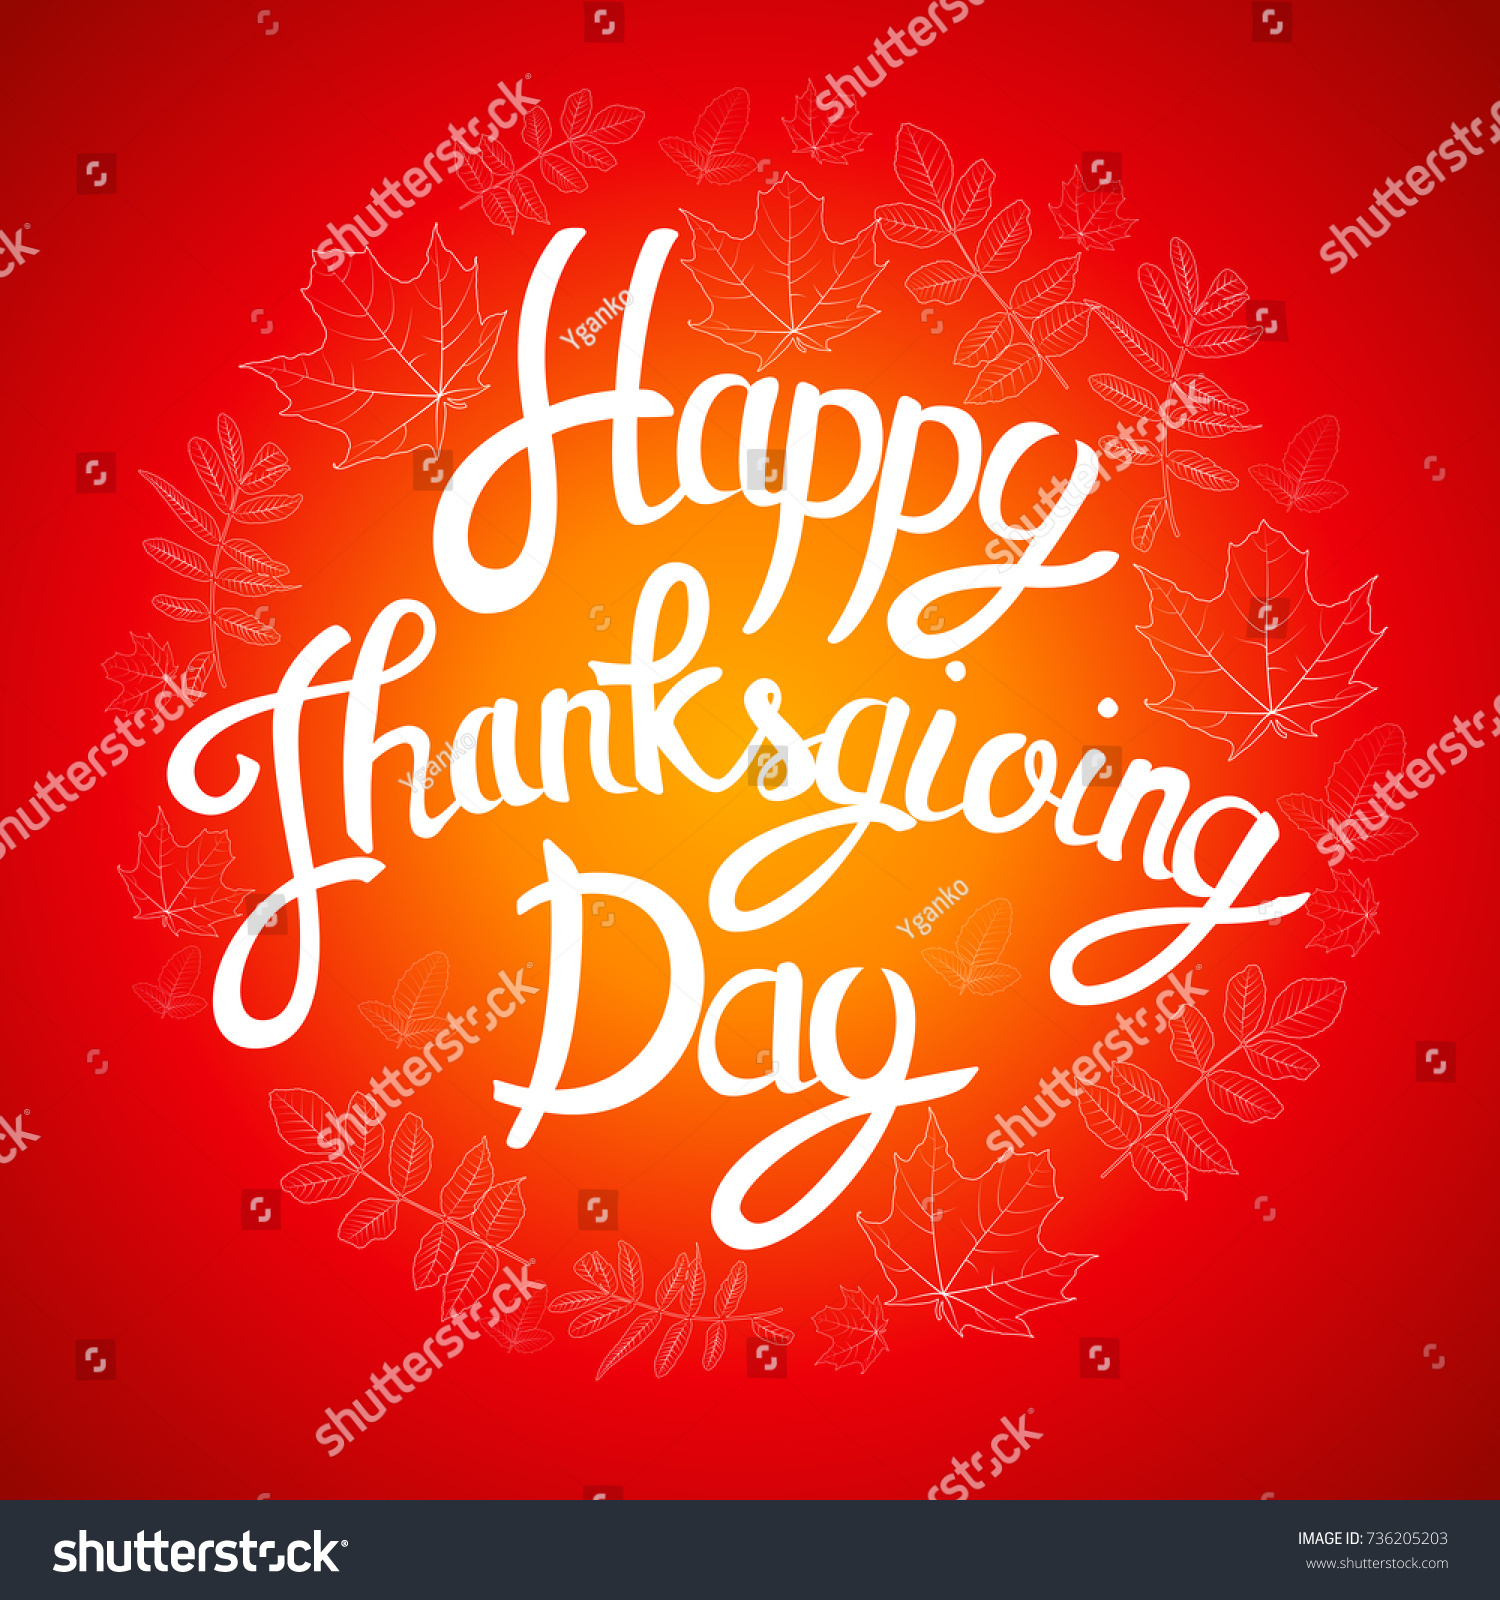 Vector hand drawn lettering thanksgiving day with doodle